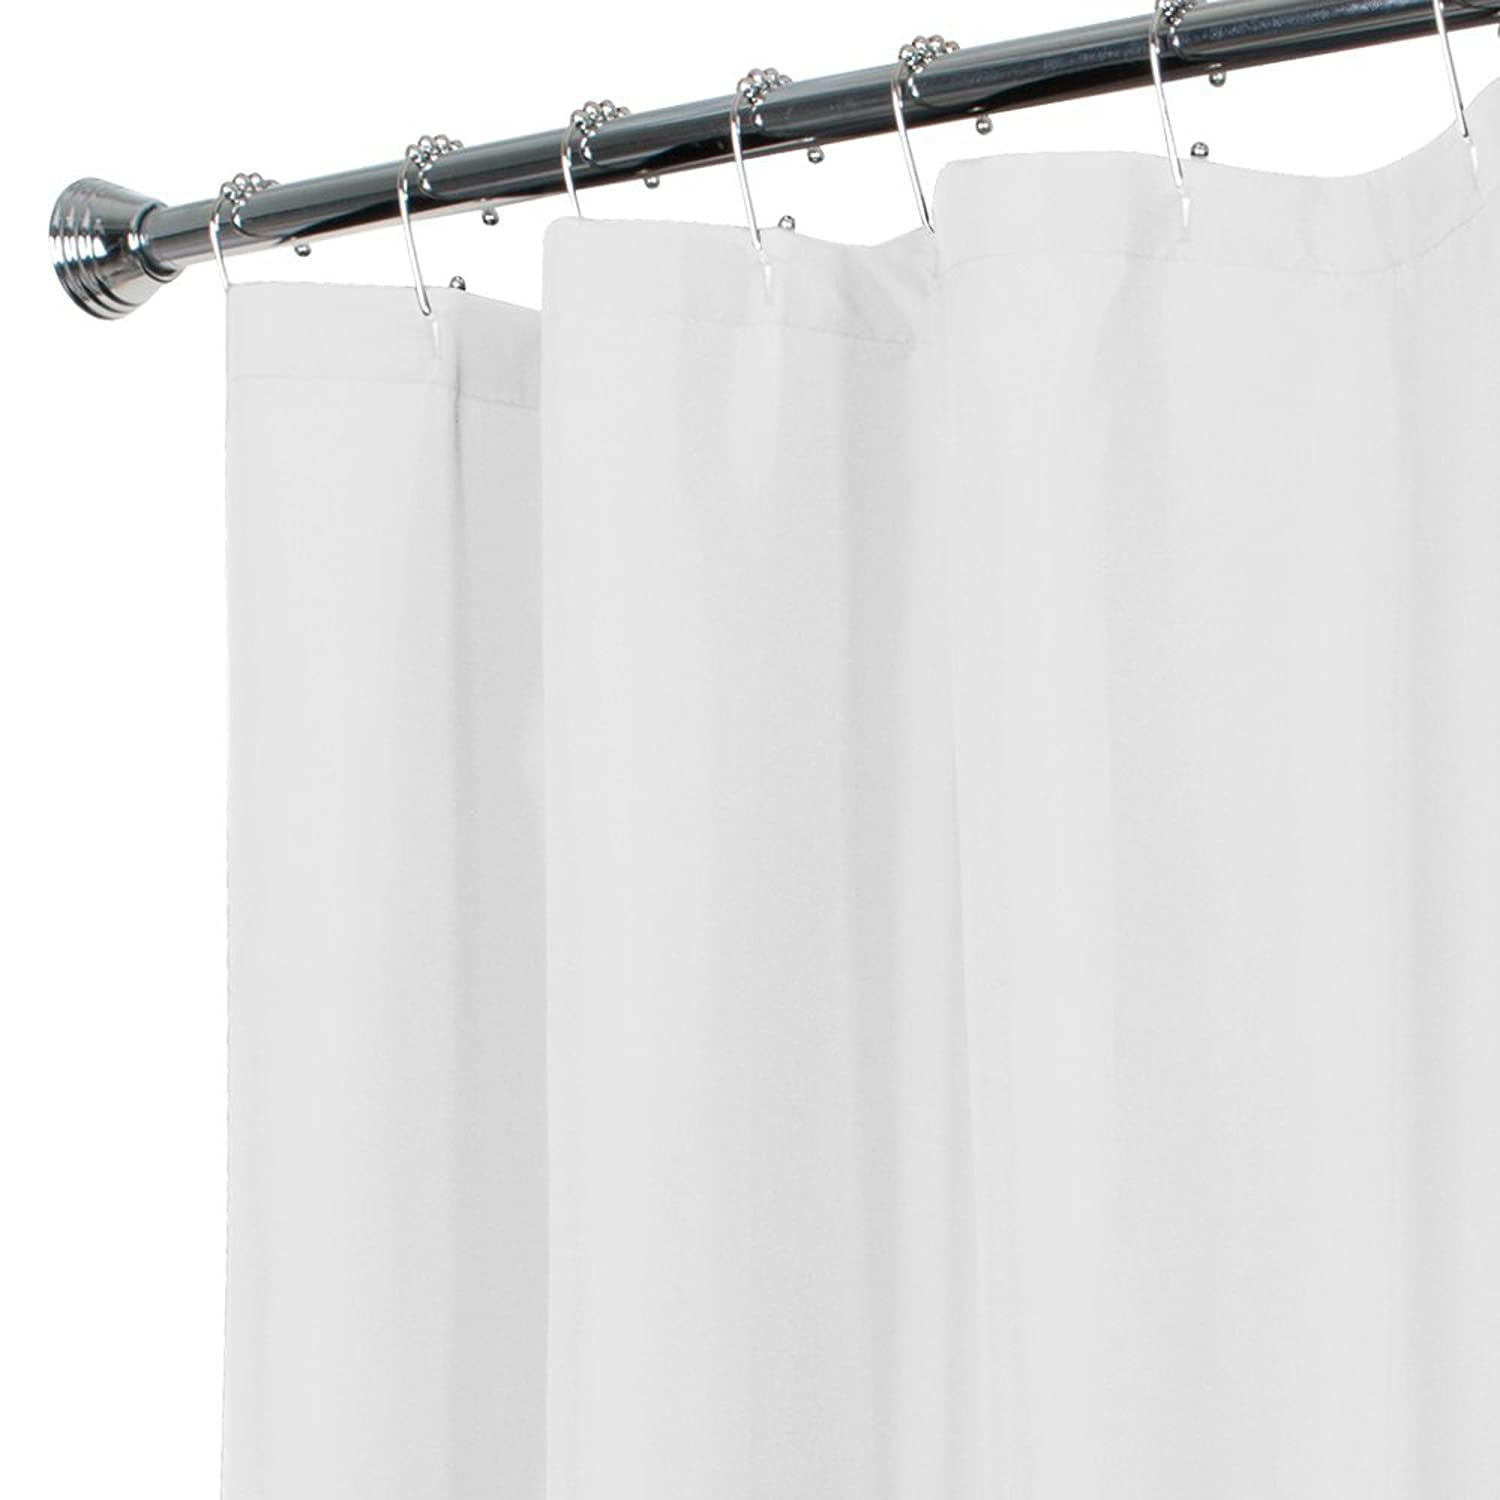 Maytex Water Repellent Fabric Shower Curtain or Liner, Machine Washable 70 x 72 72639